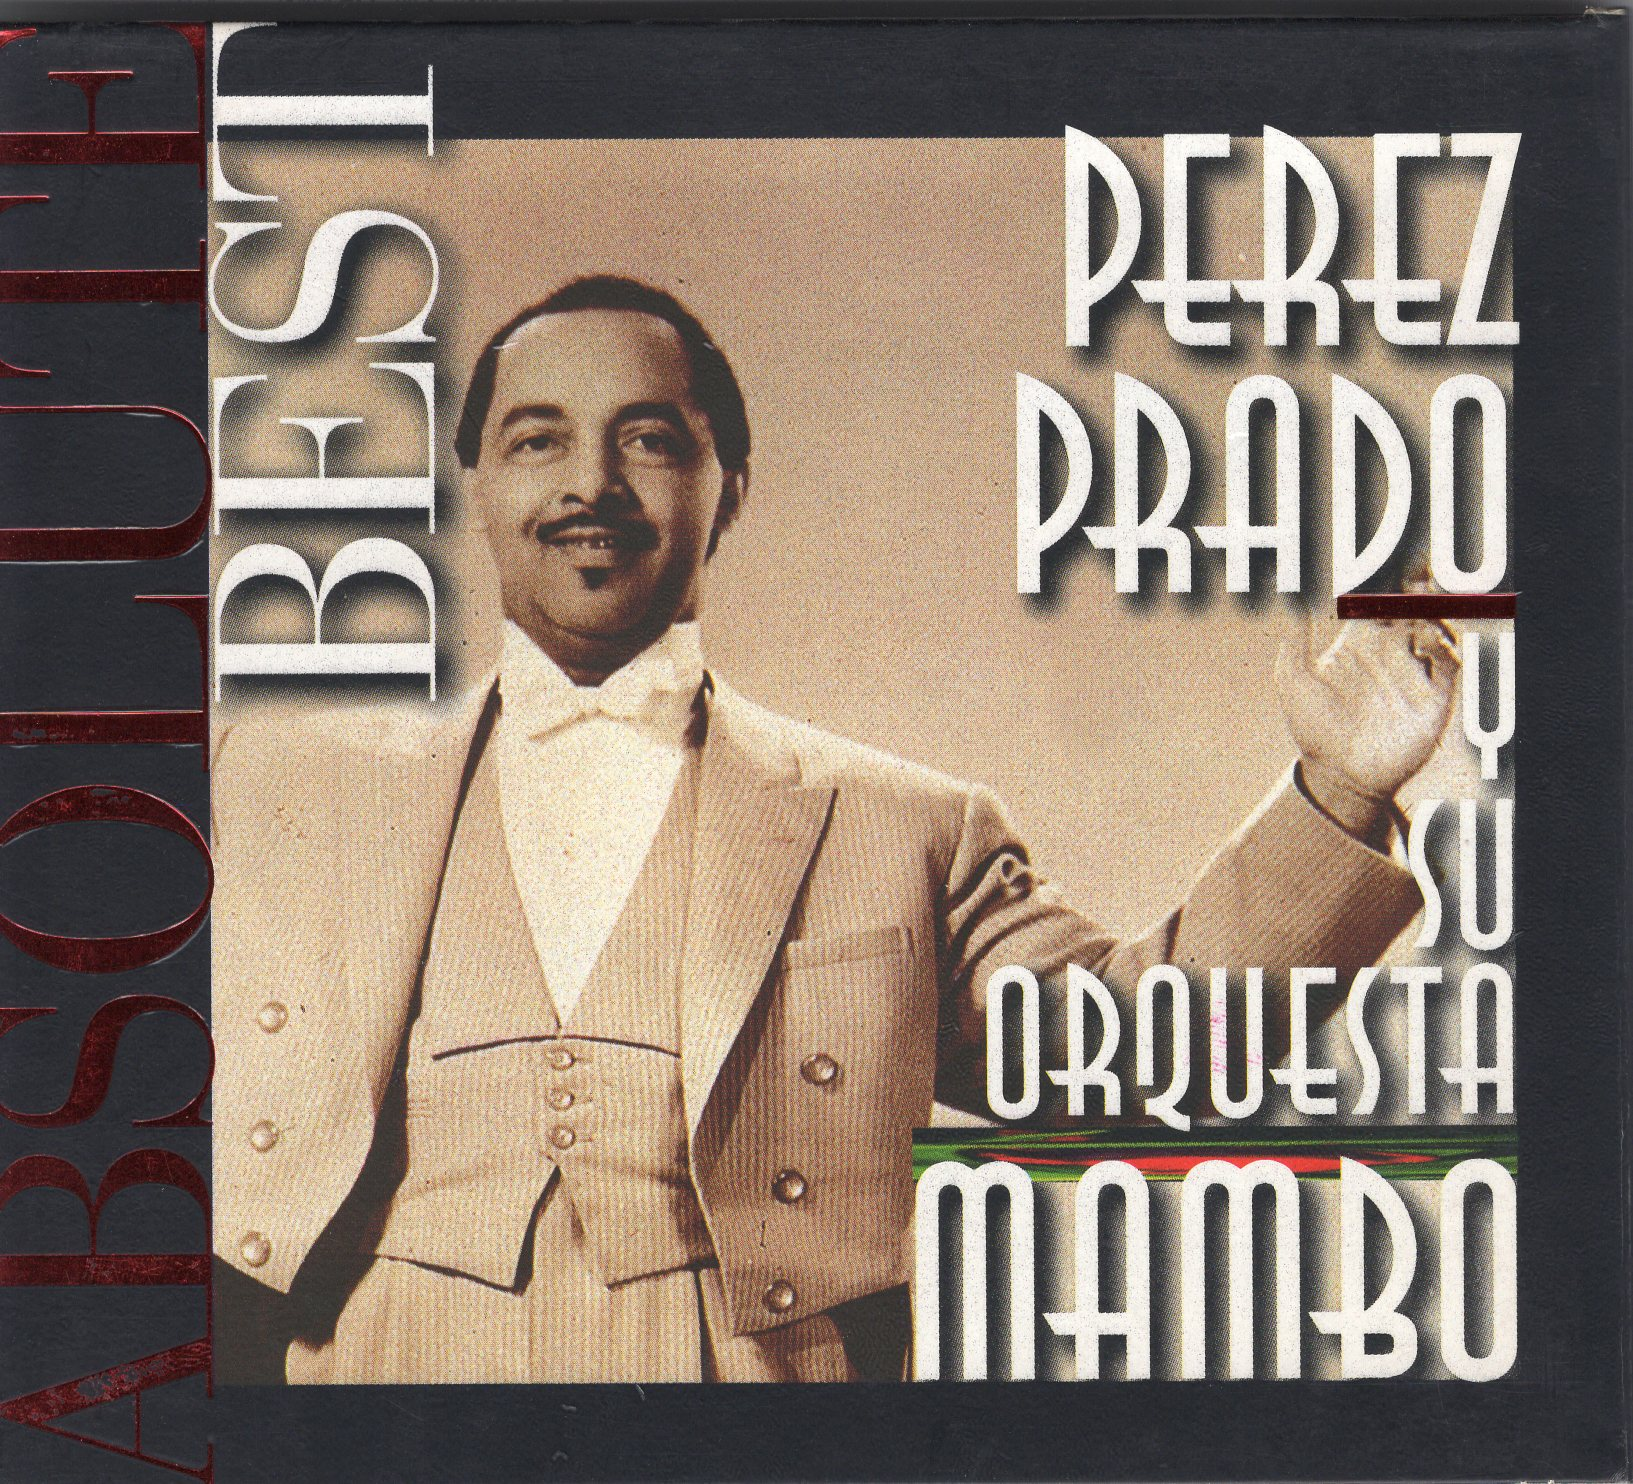 """Absolute Best Perez Prado and His Orchestra Mambo"" Perez Prado and His Orchestra"